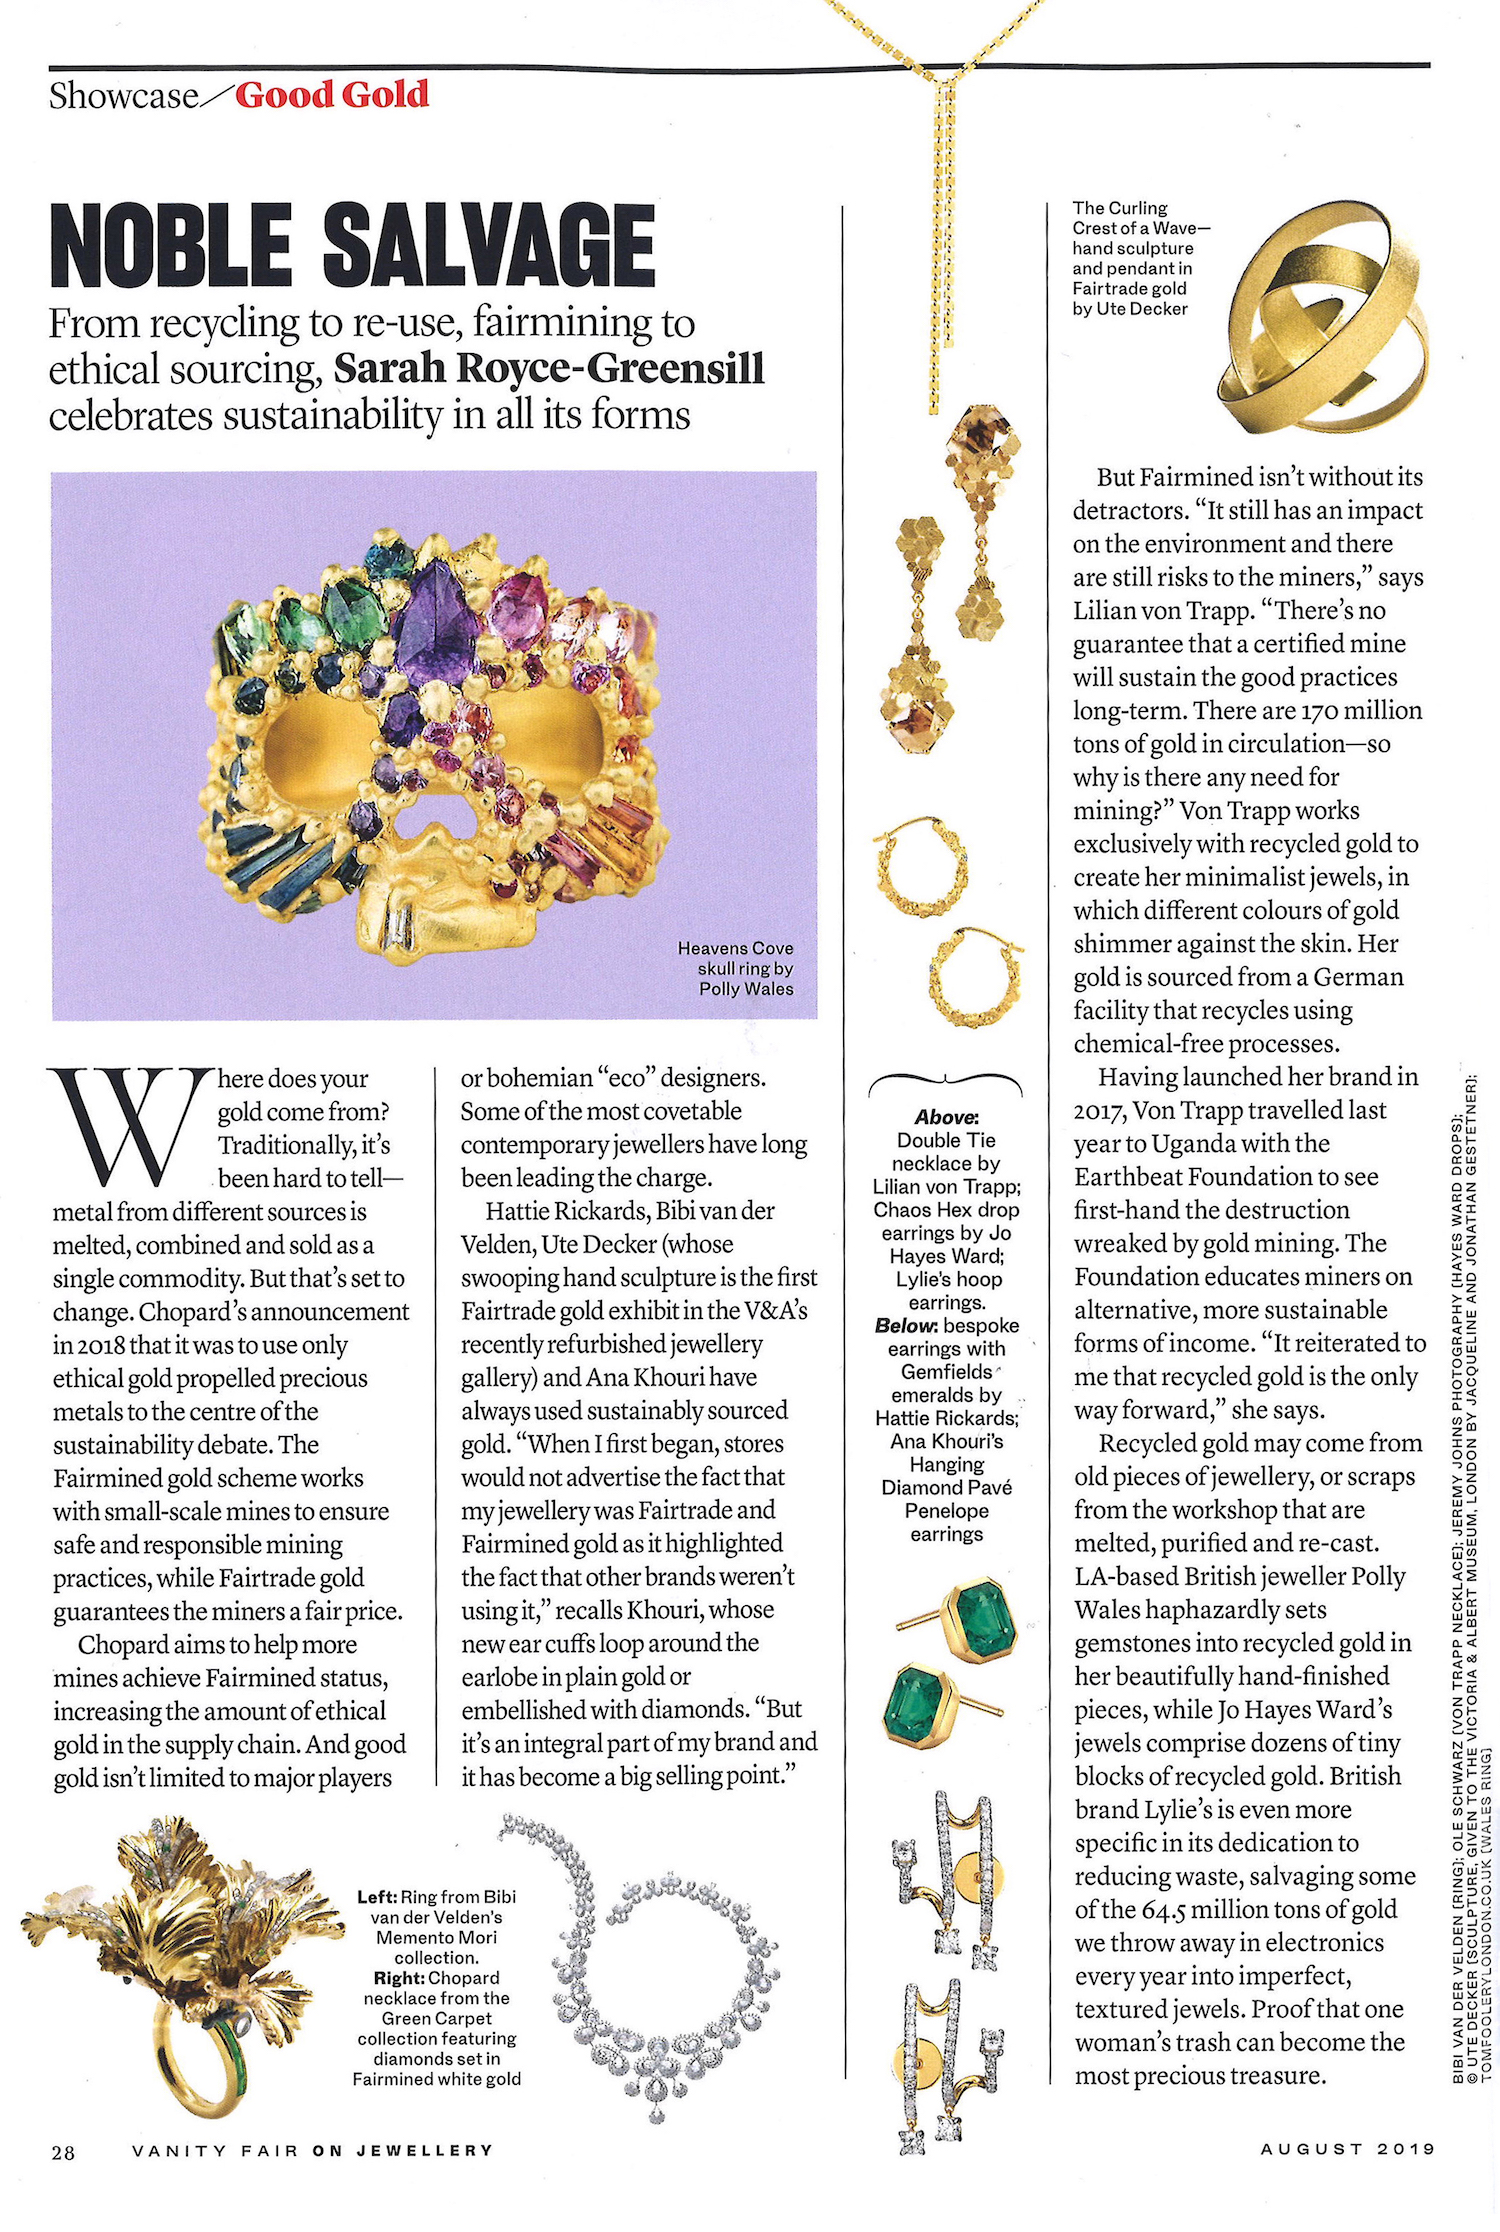 Vanity Fair Uk August 2019 Diamond Pave Penelope Earrings.jpg